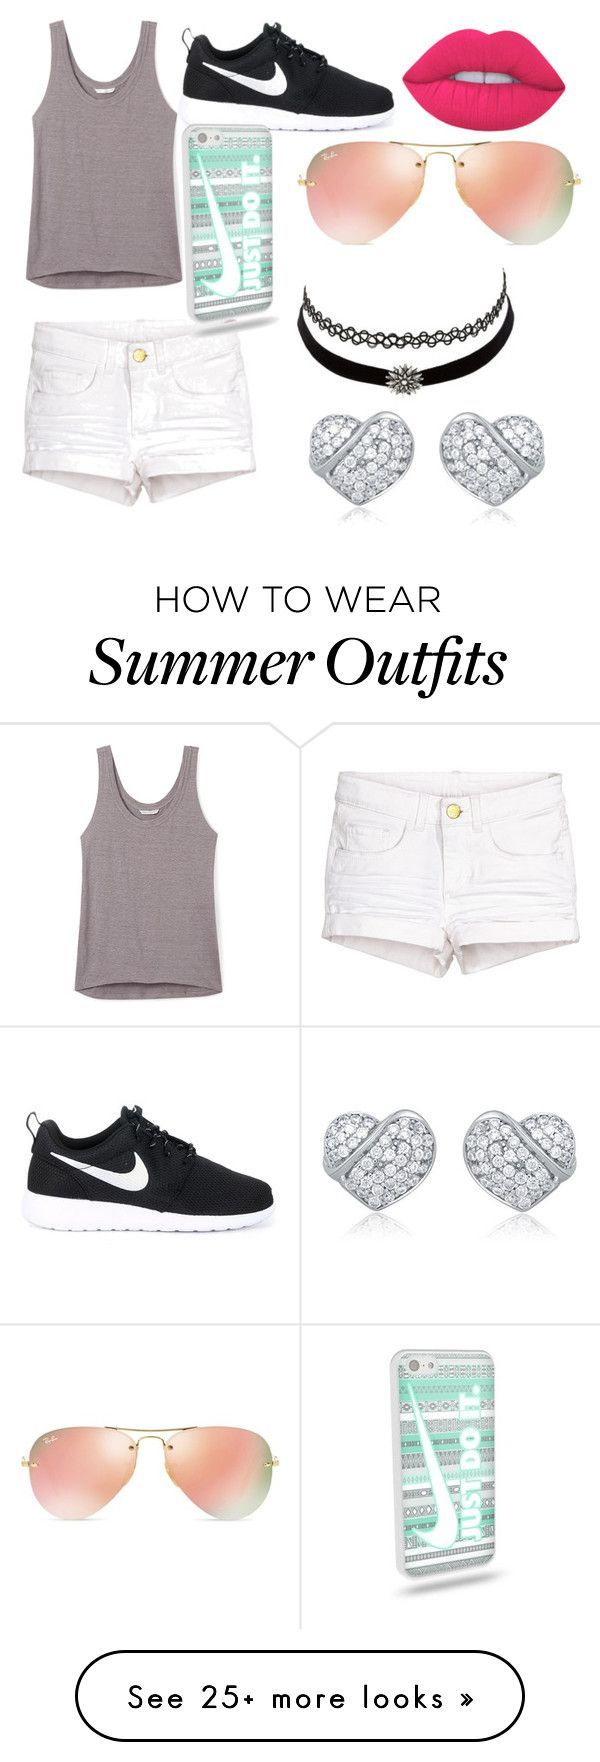 """""""Cute outfit for summer lol! ✌️"""" by chloewood2006 on Polyvore featuring Rebecca Minkoff, NIKE, Ray-Ban, Lime Crime and Charlotte Russe"""